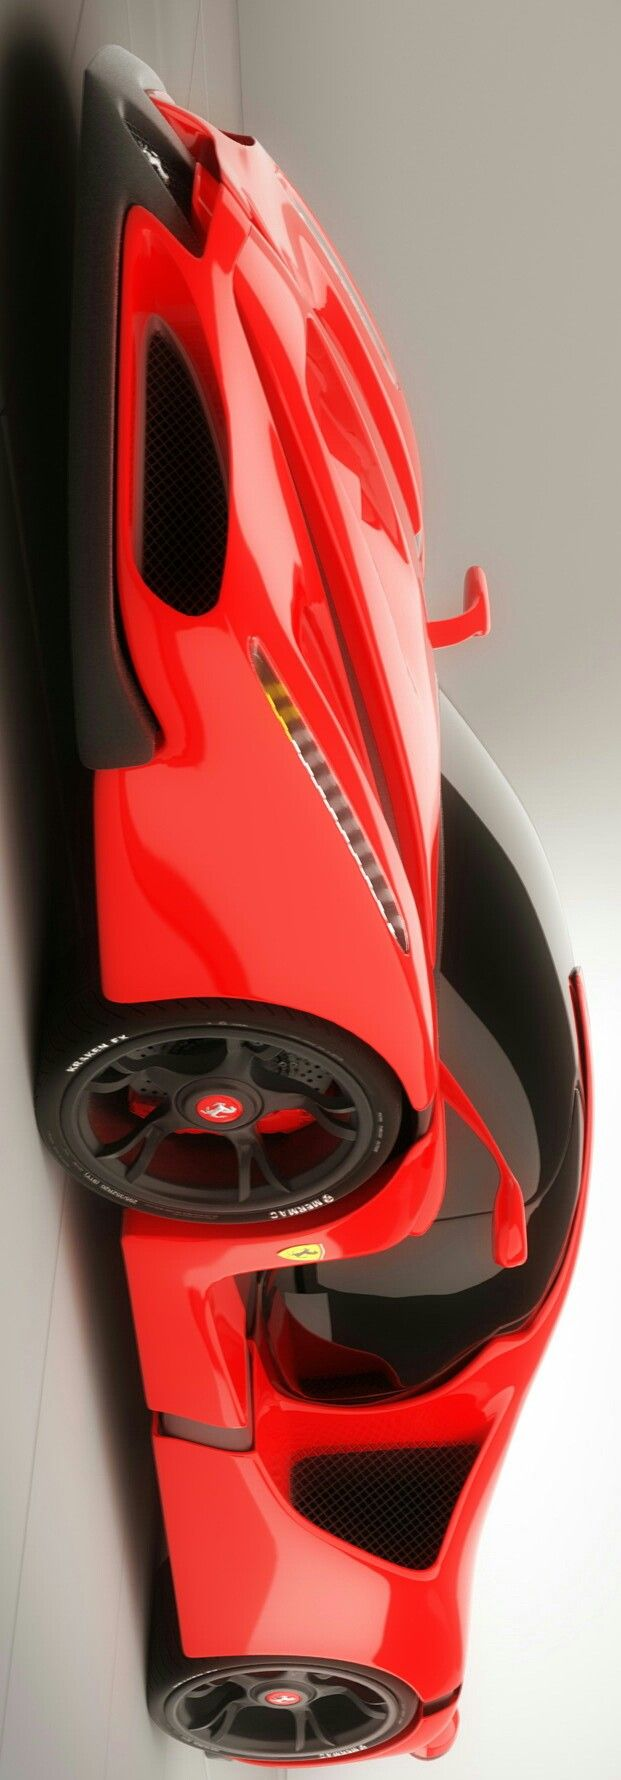 917 best concept cars images on pinterest dream cars car and 917 best concept cars images on pinterest dream cars car and cool cars vanachro Gallery